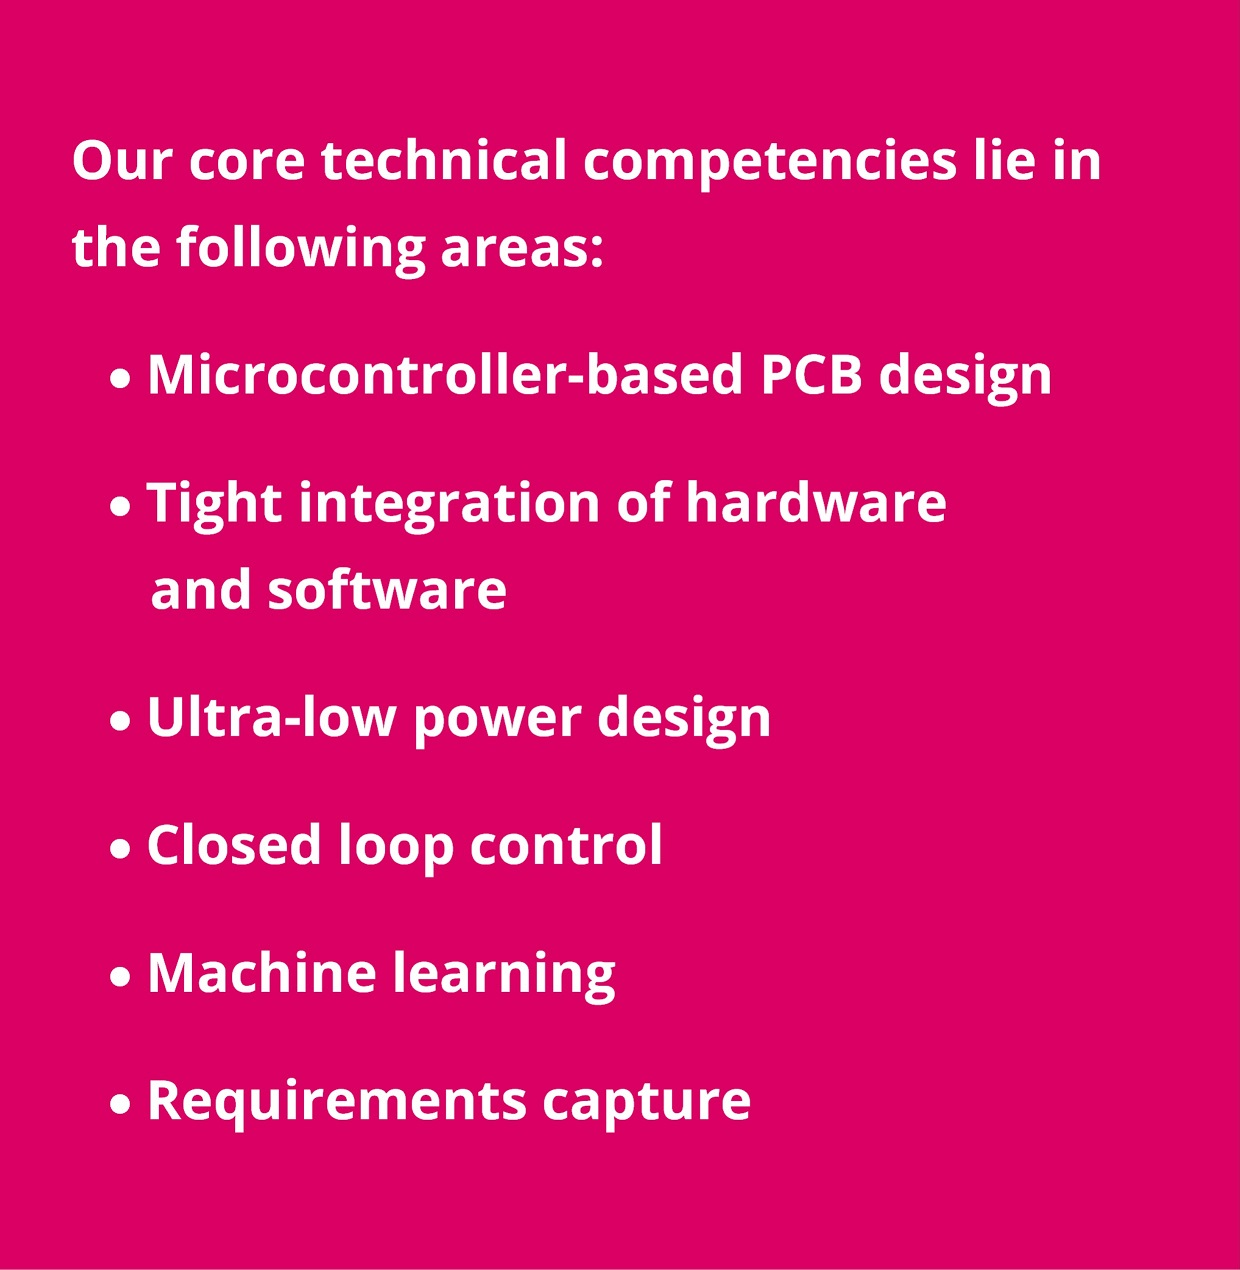 Consultancy: microcontroller-nased PCB design; tight integration of hardware and software; ultra-low power design; closed loop control; machine learning; requirements capture